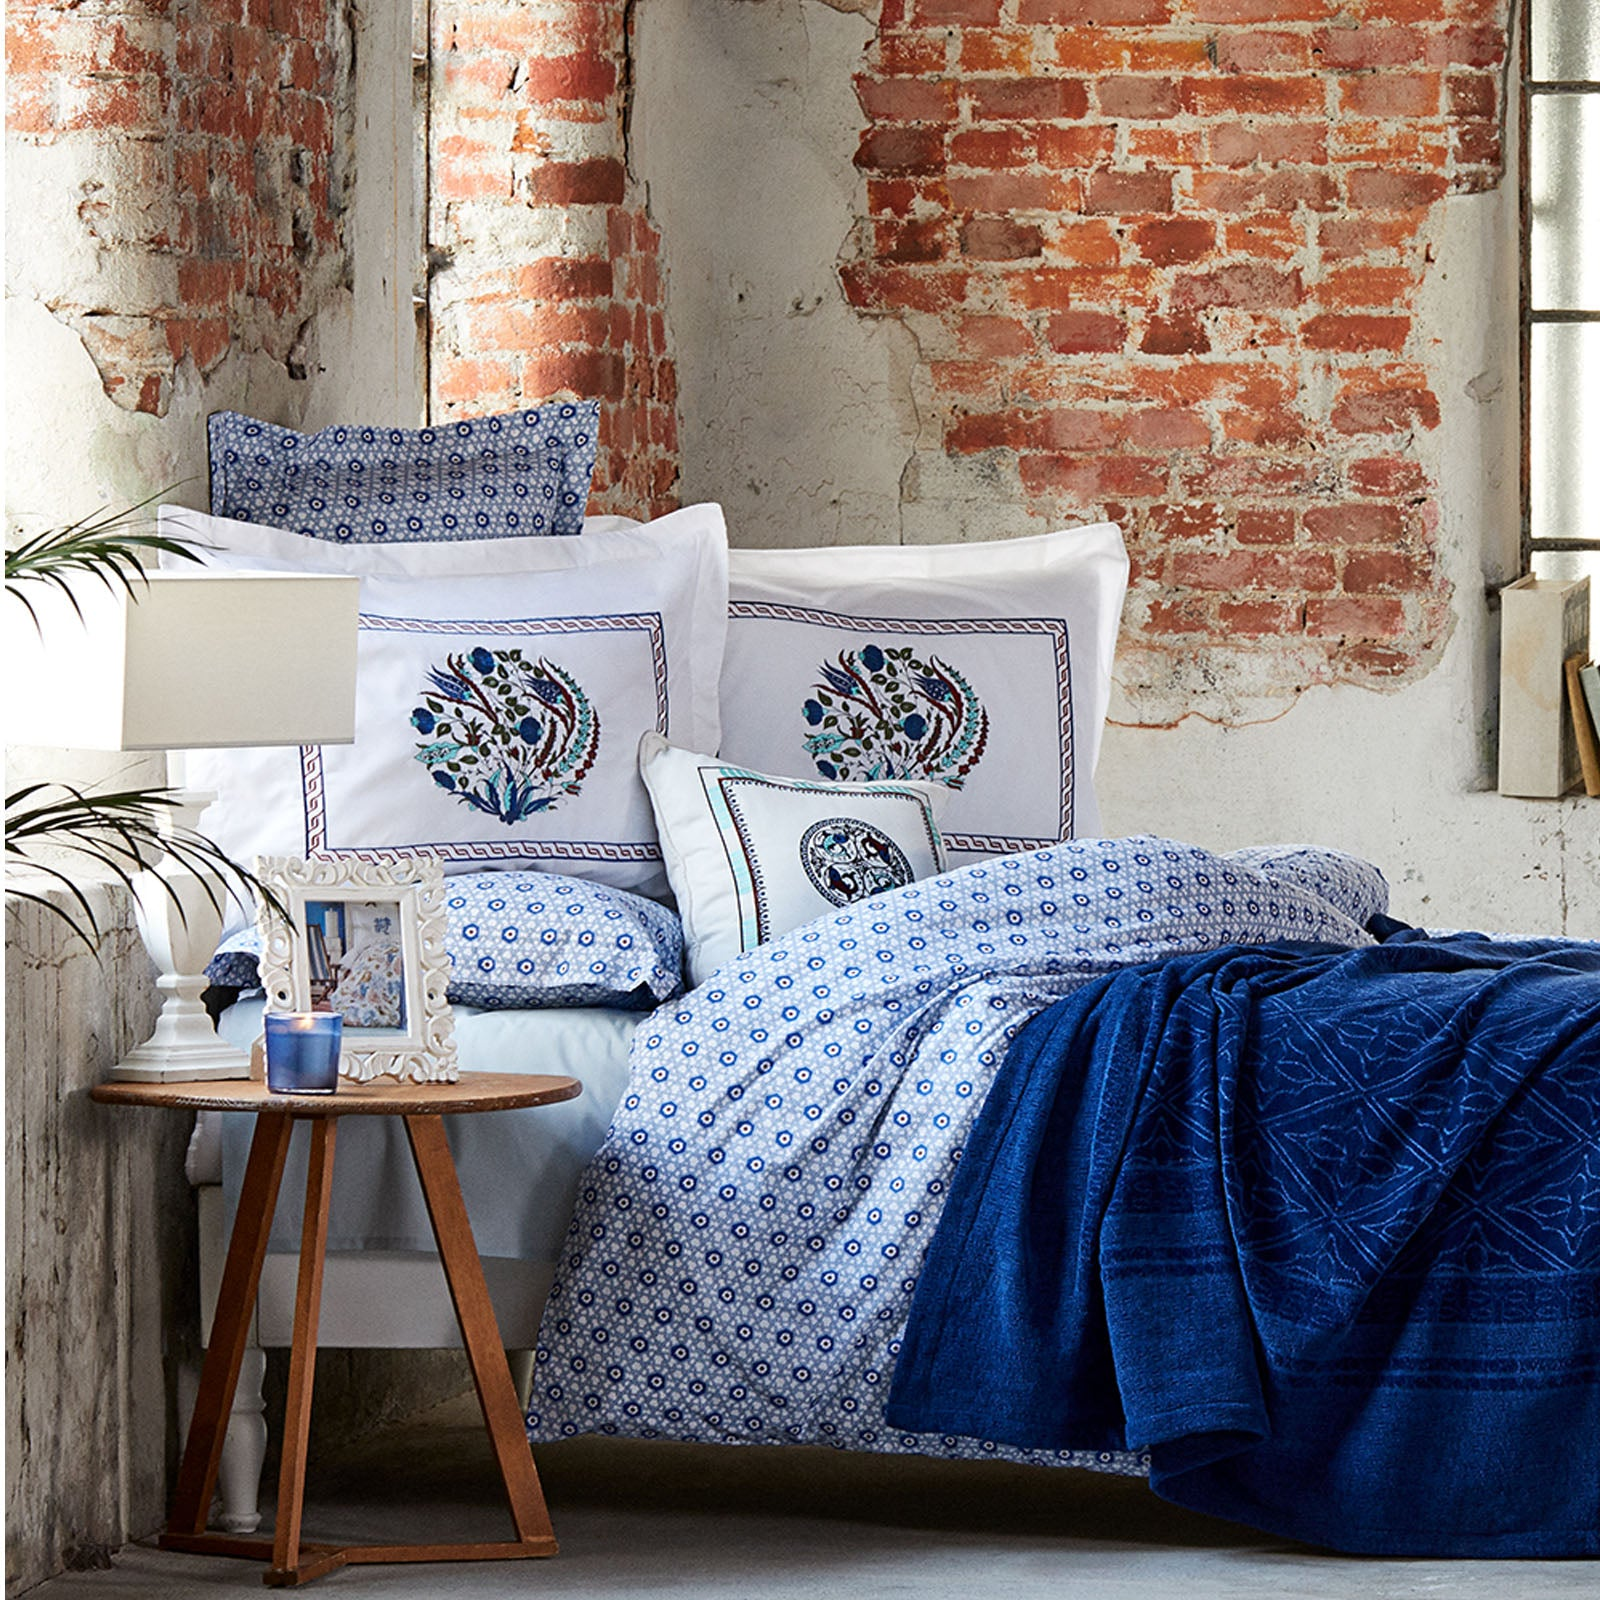 MAI LACIVERT  Bedding  Set 200.15.01.0185